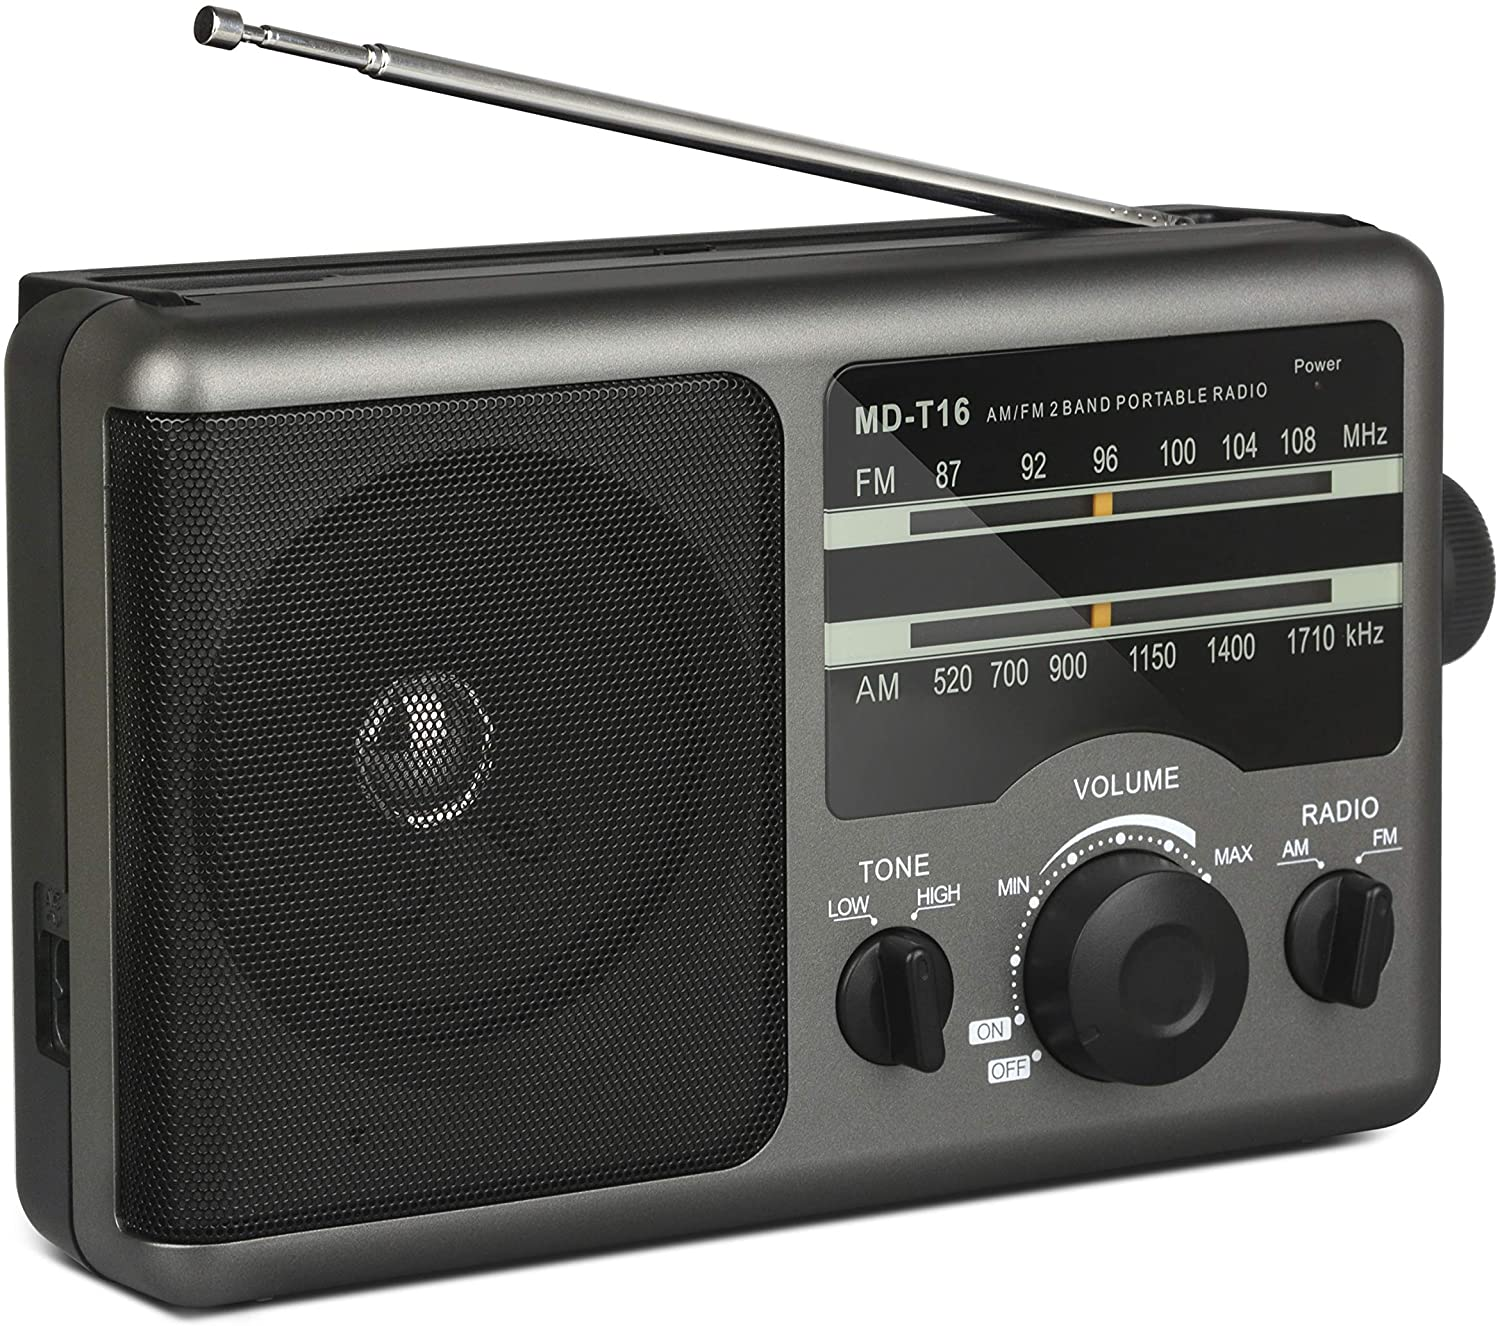 Portable AM FM Radio Transistor Radio Operated by 4 D-Cell Batteries or AC Power with Excellent Reception, Large Speaker, 3.5 mm Earphone Jack, Two Tone Mode, Big Handle for Outdoor or Indoor